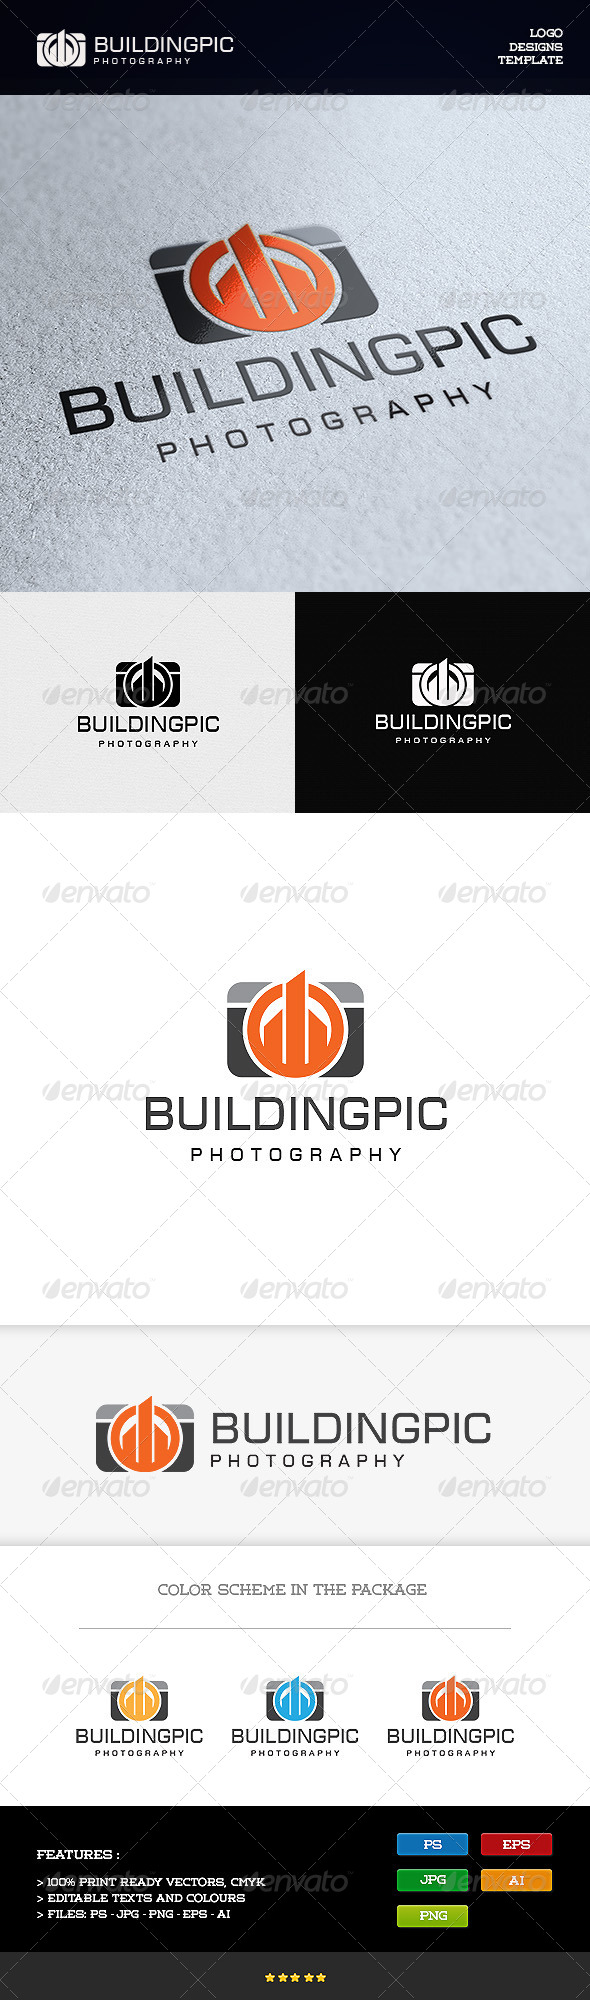 Building Photography